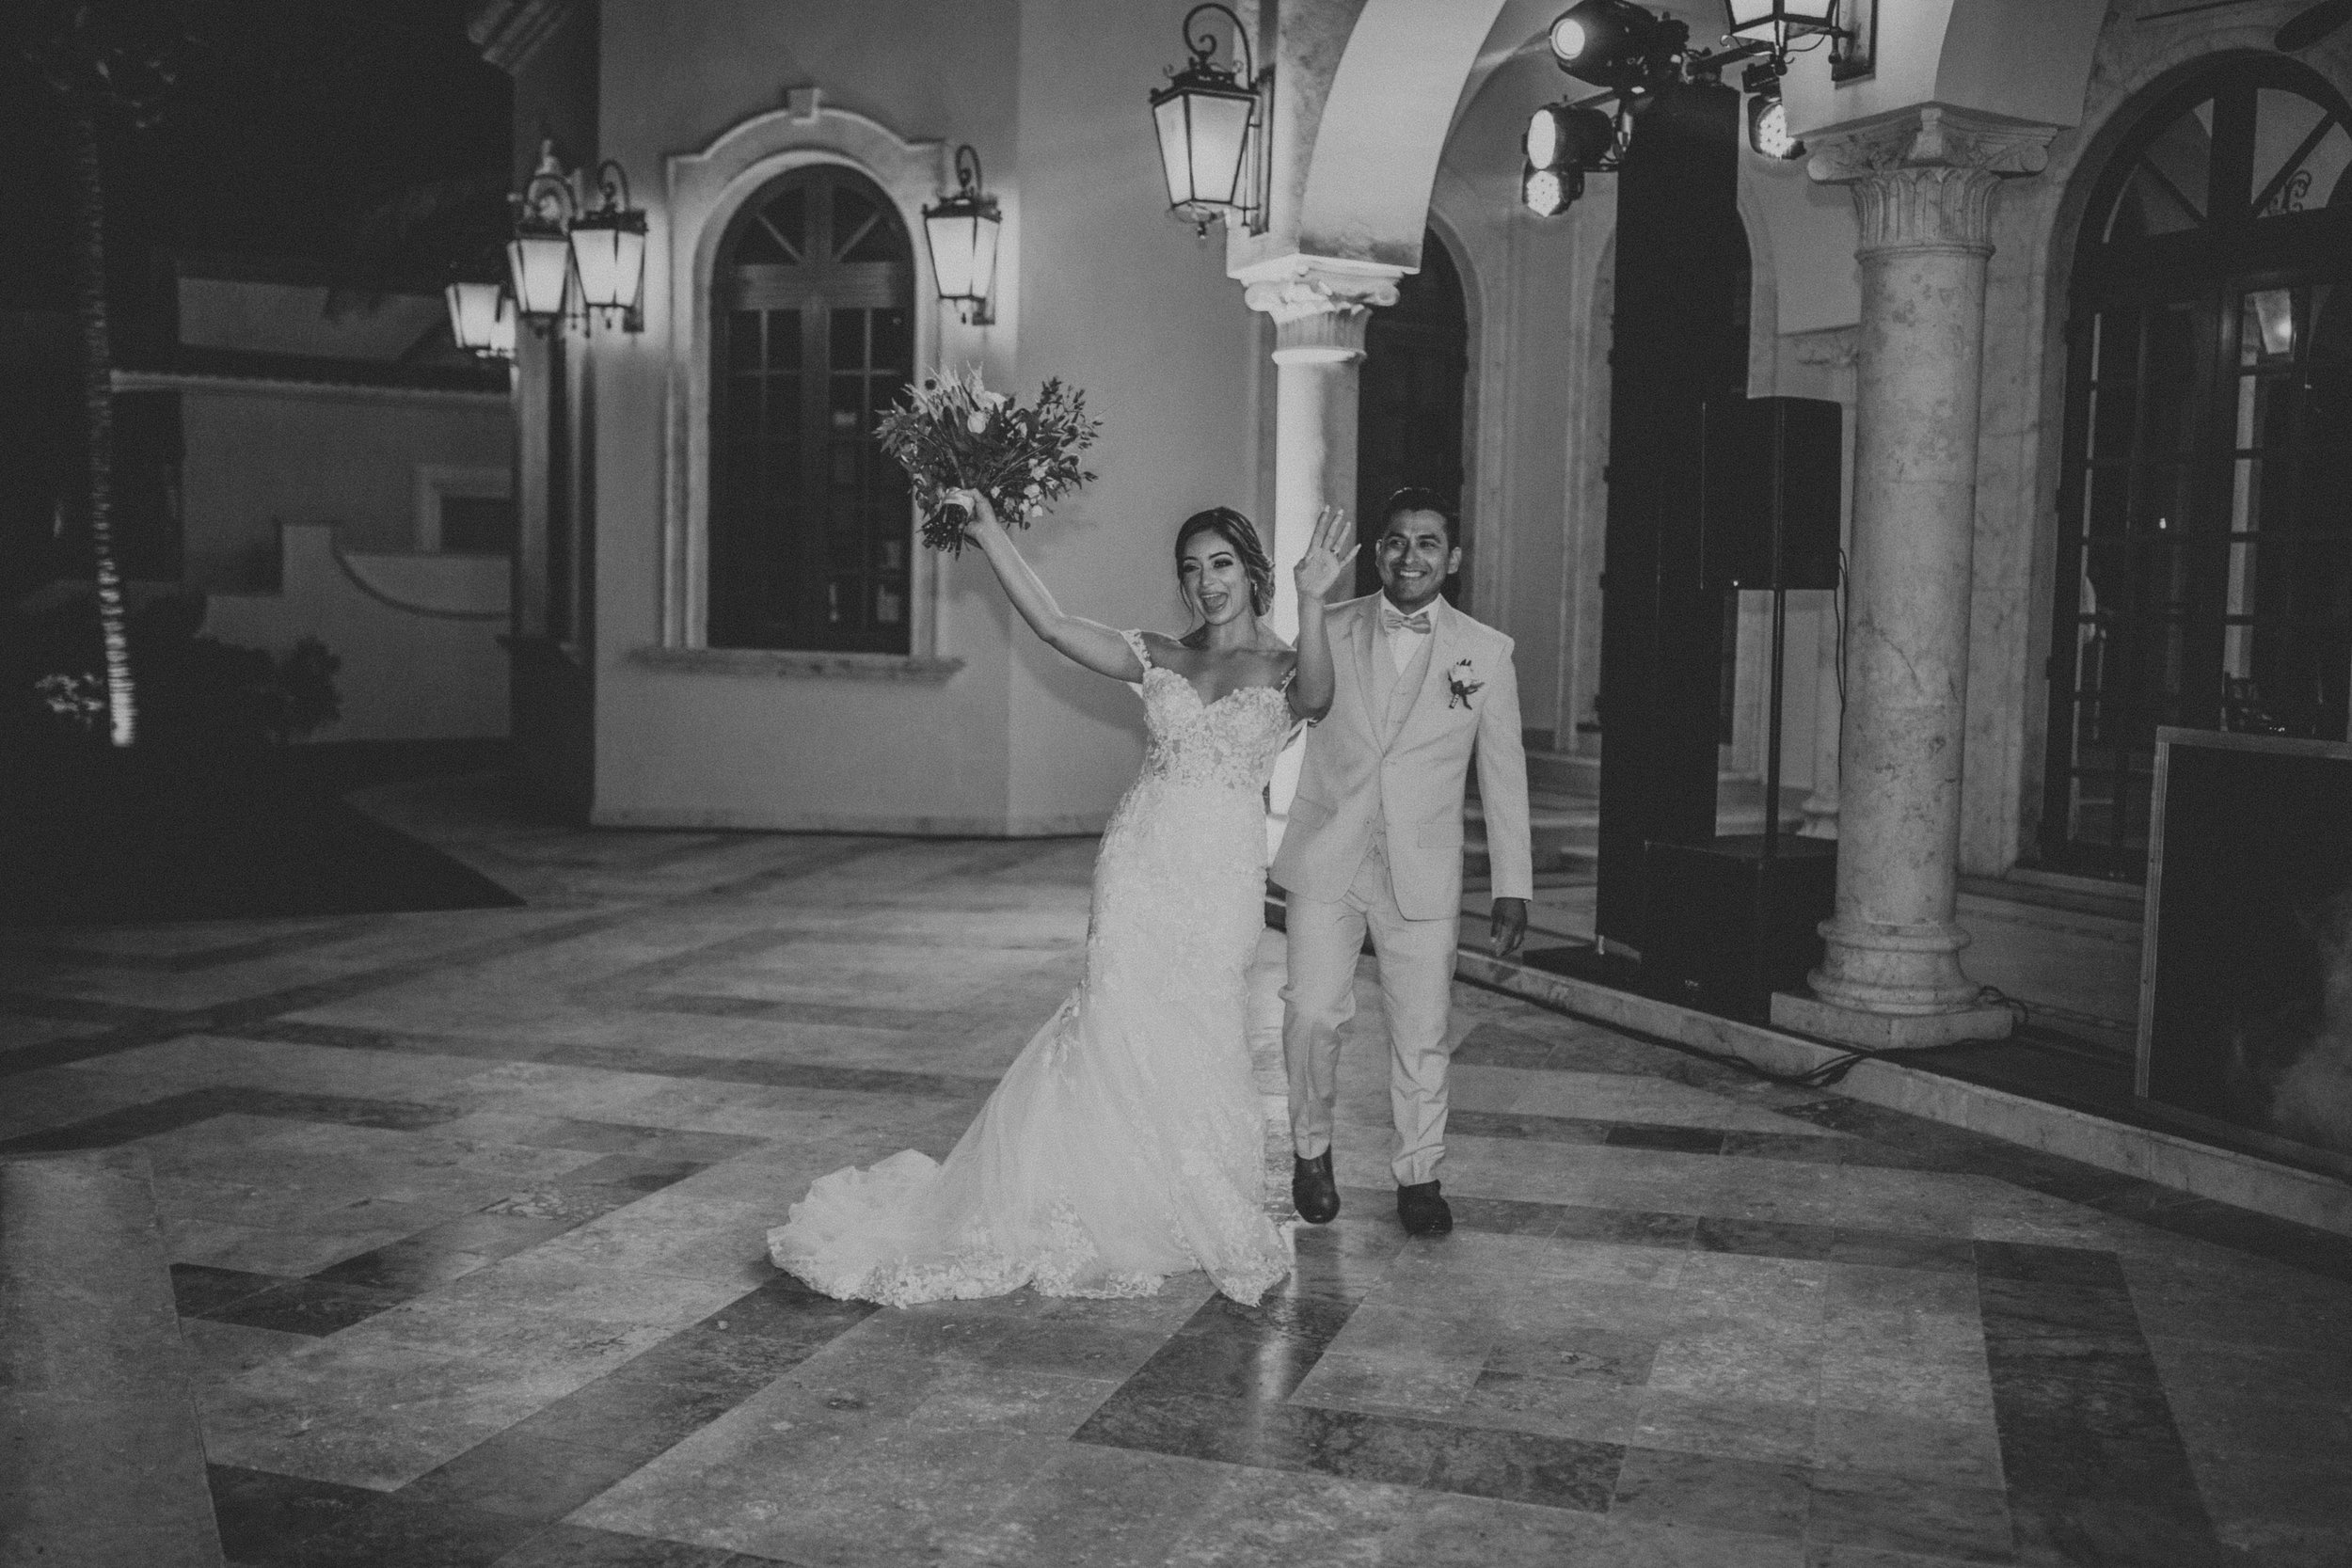 mexico-destination-wedding-venue-85.jpg